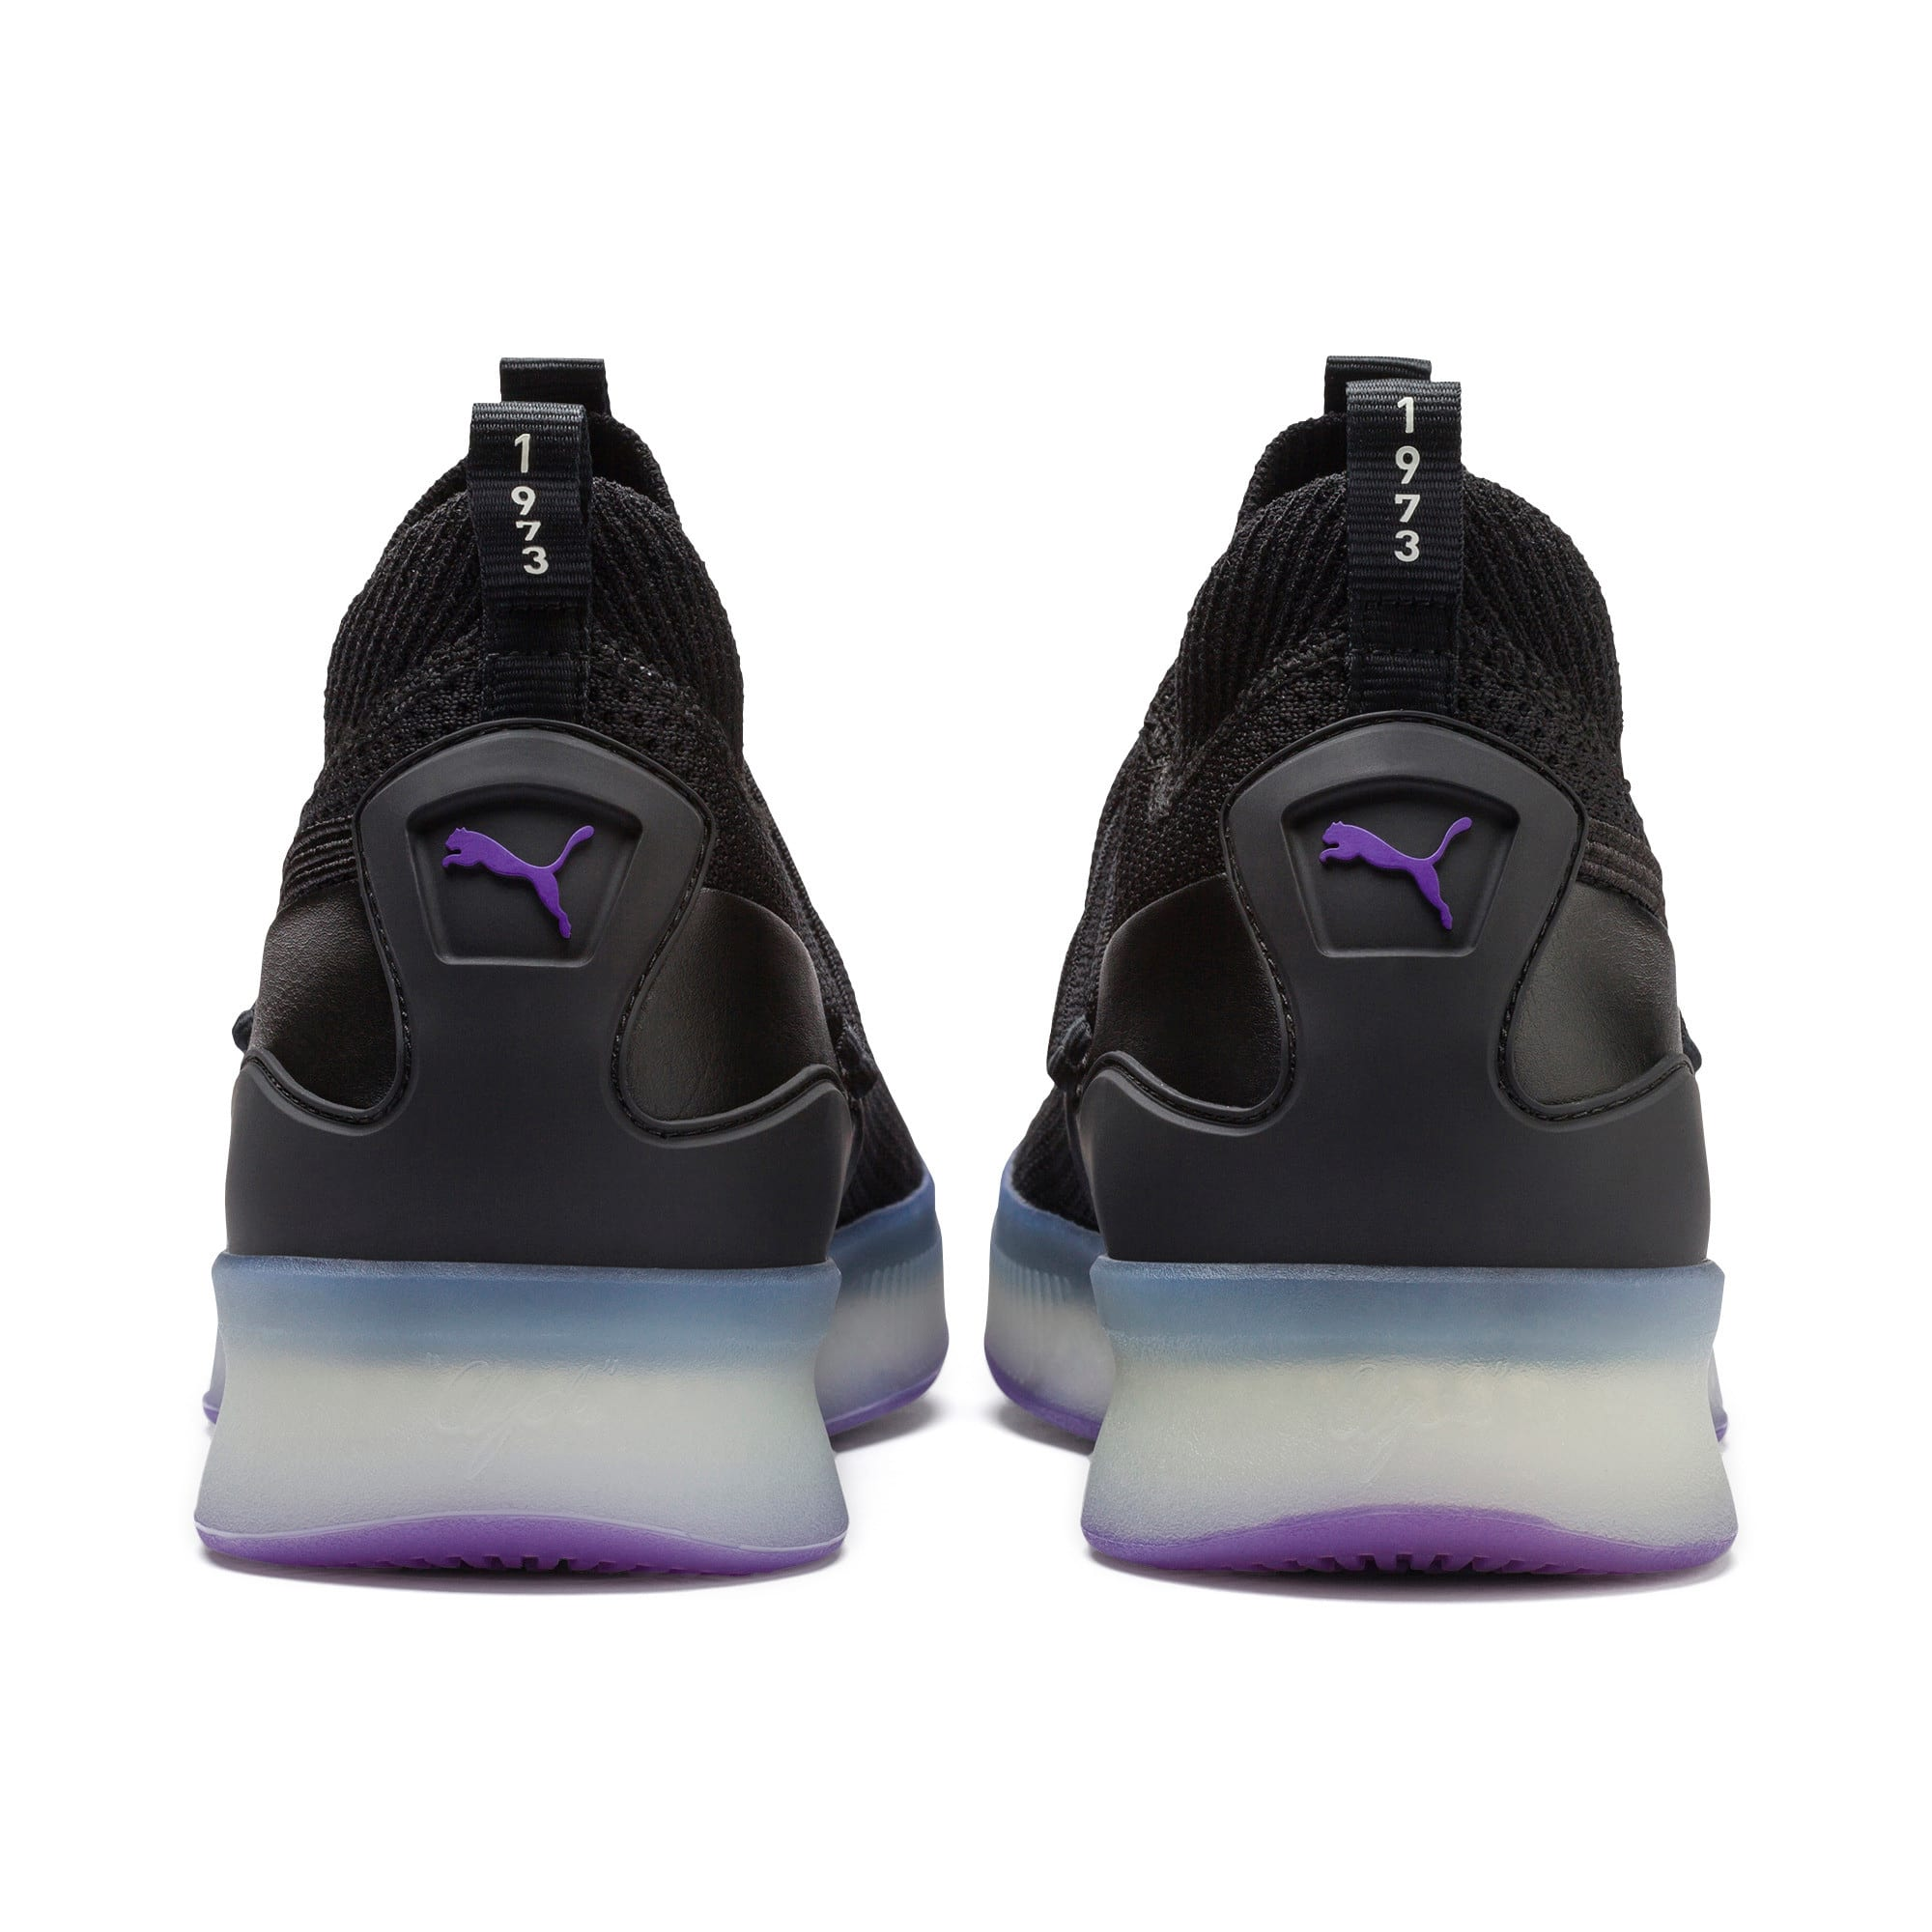 Thumbnail 3 of Clyde Court Basketball Shoes, Puma Black-ELECTRIC PURPLE, medium